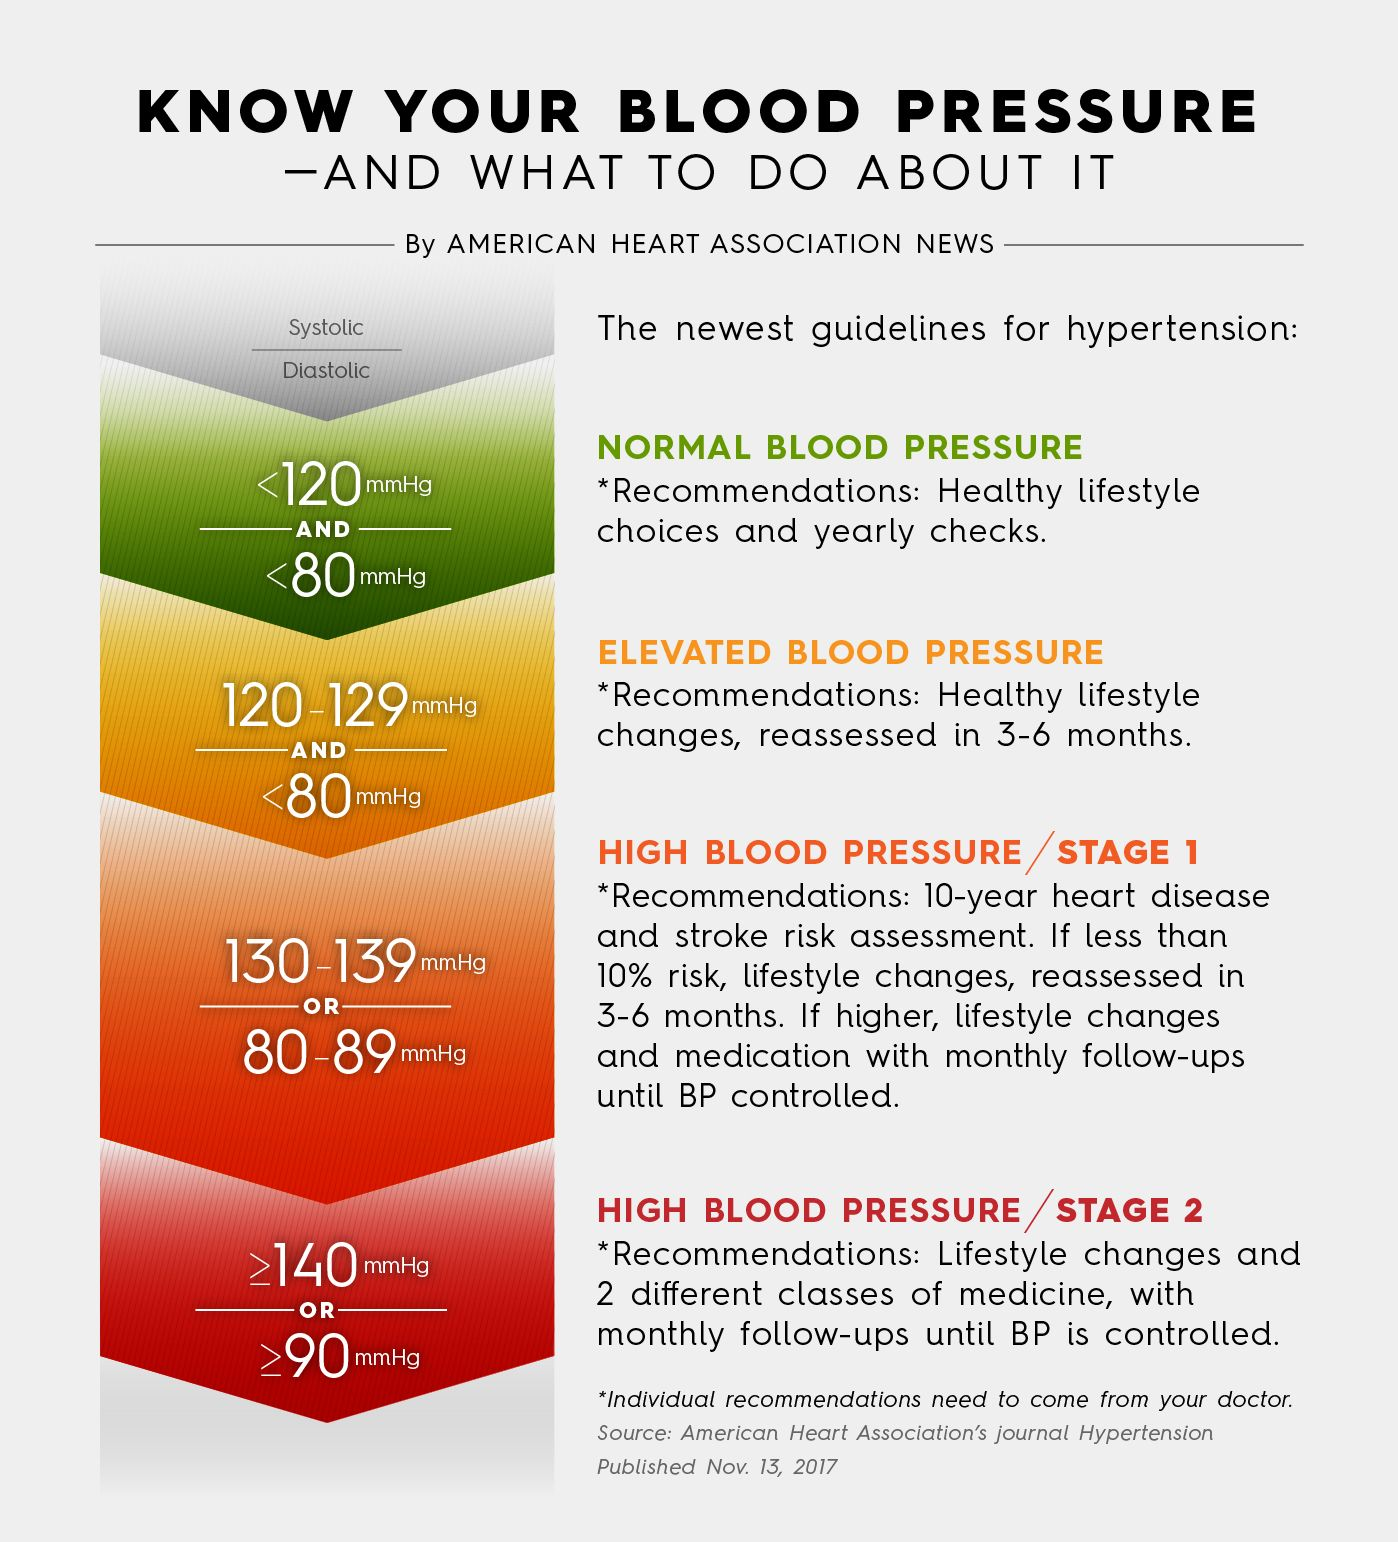 High blood pressure is redefined as 130, not 140